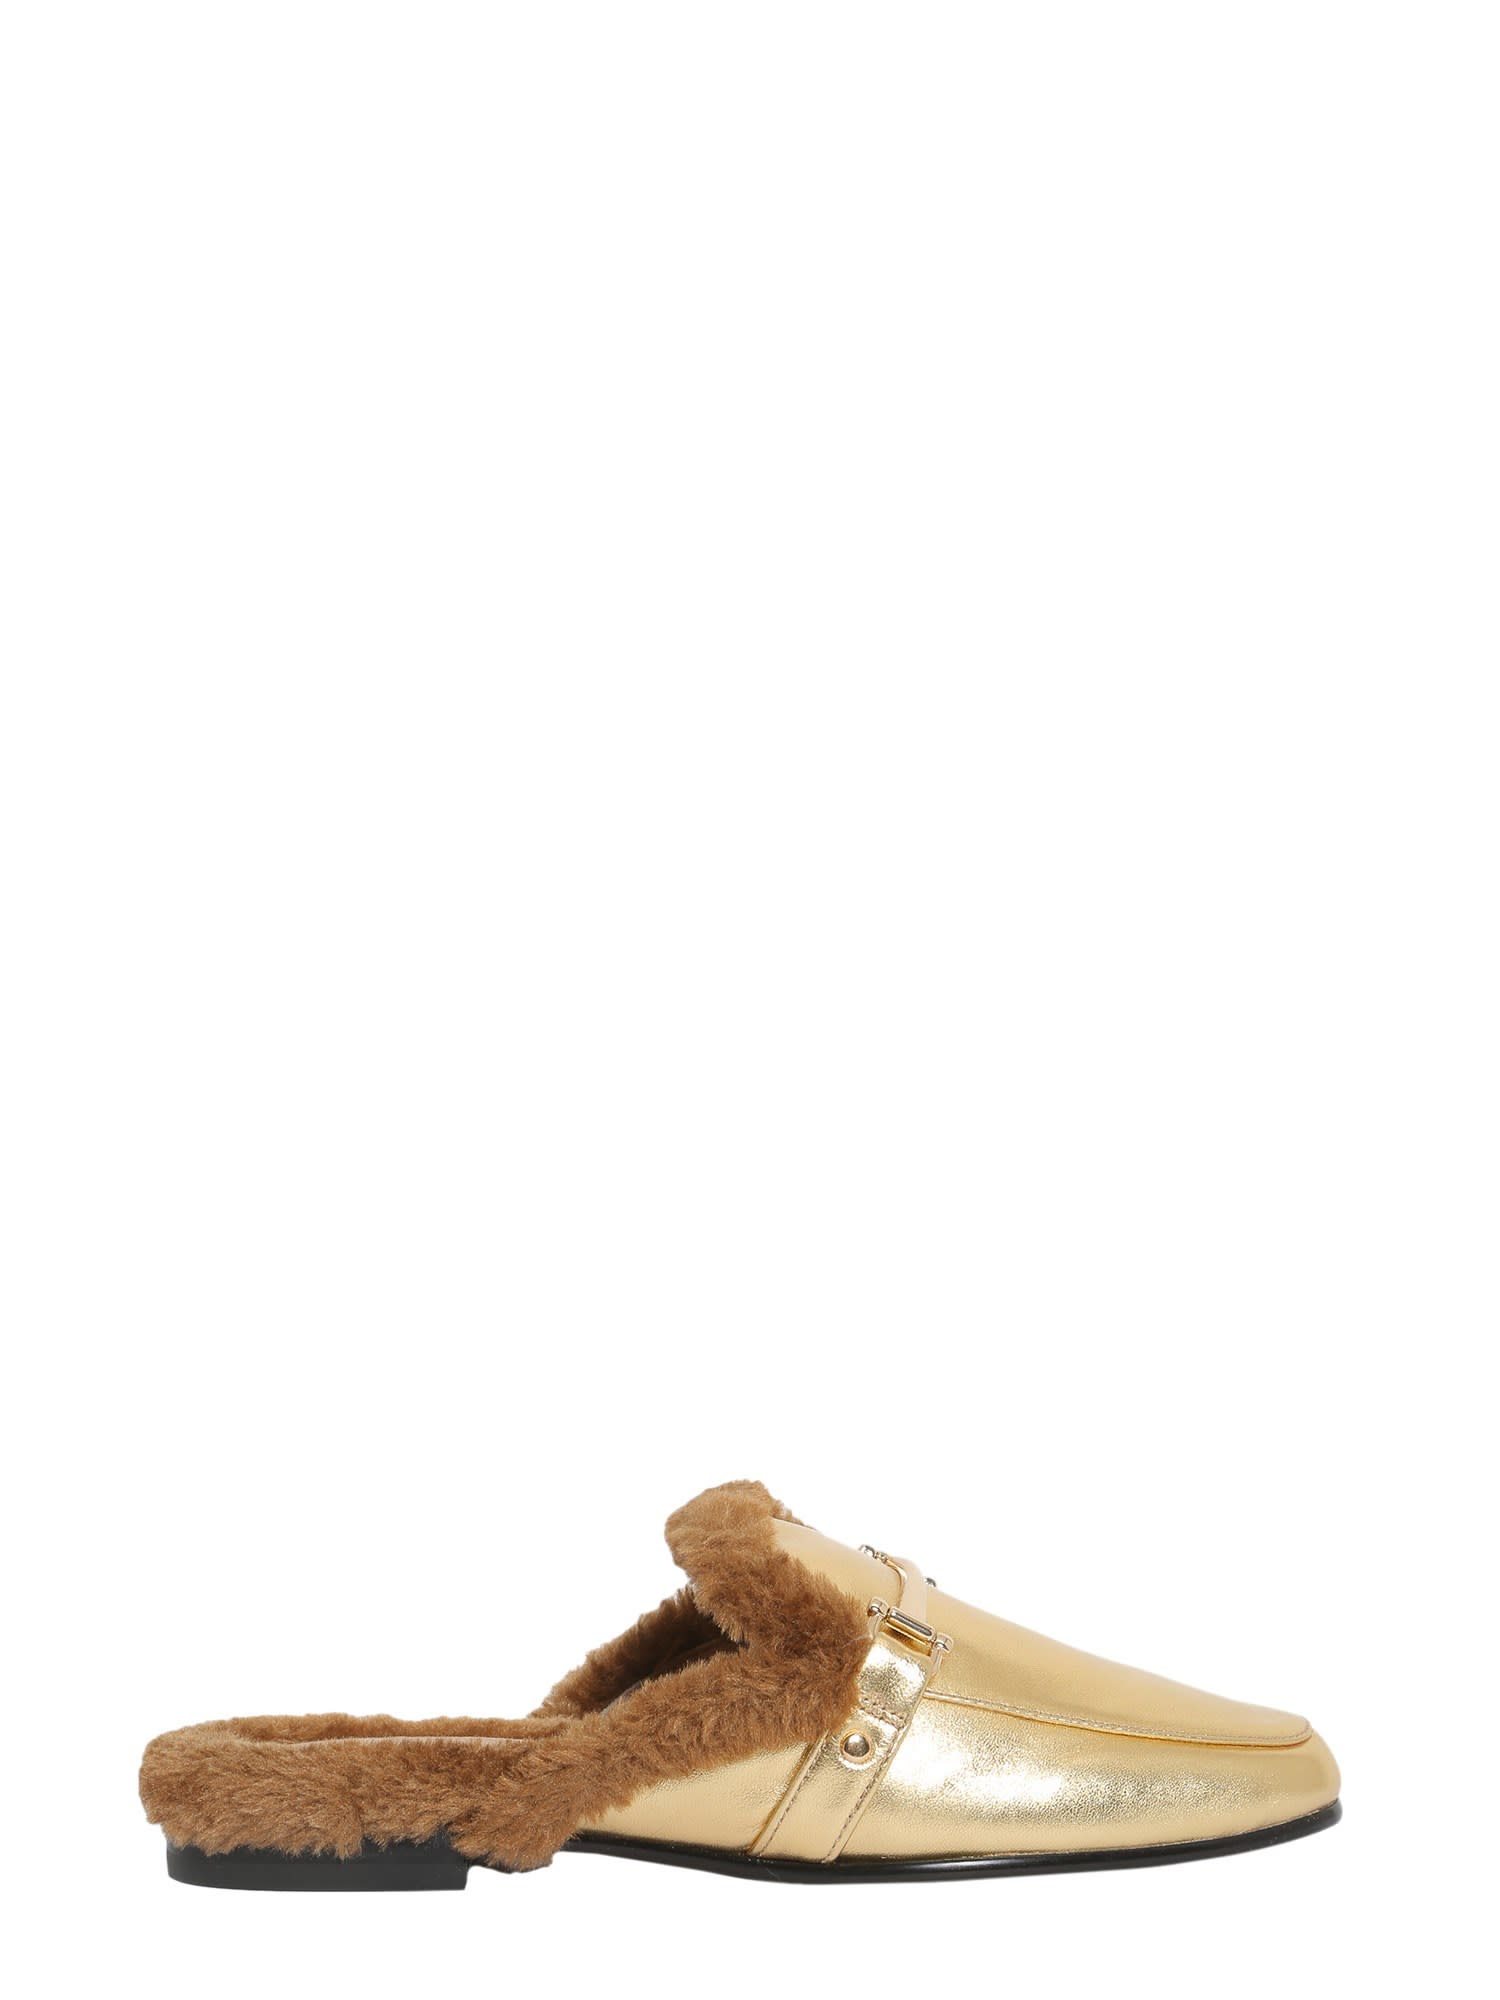 Buy Sam Edelman Danica Slippers online, shop Sam Edelman shoes with free shipping